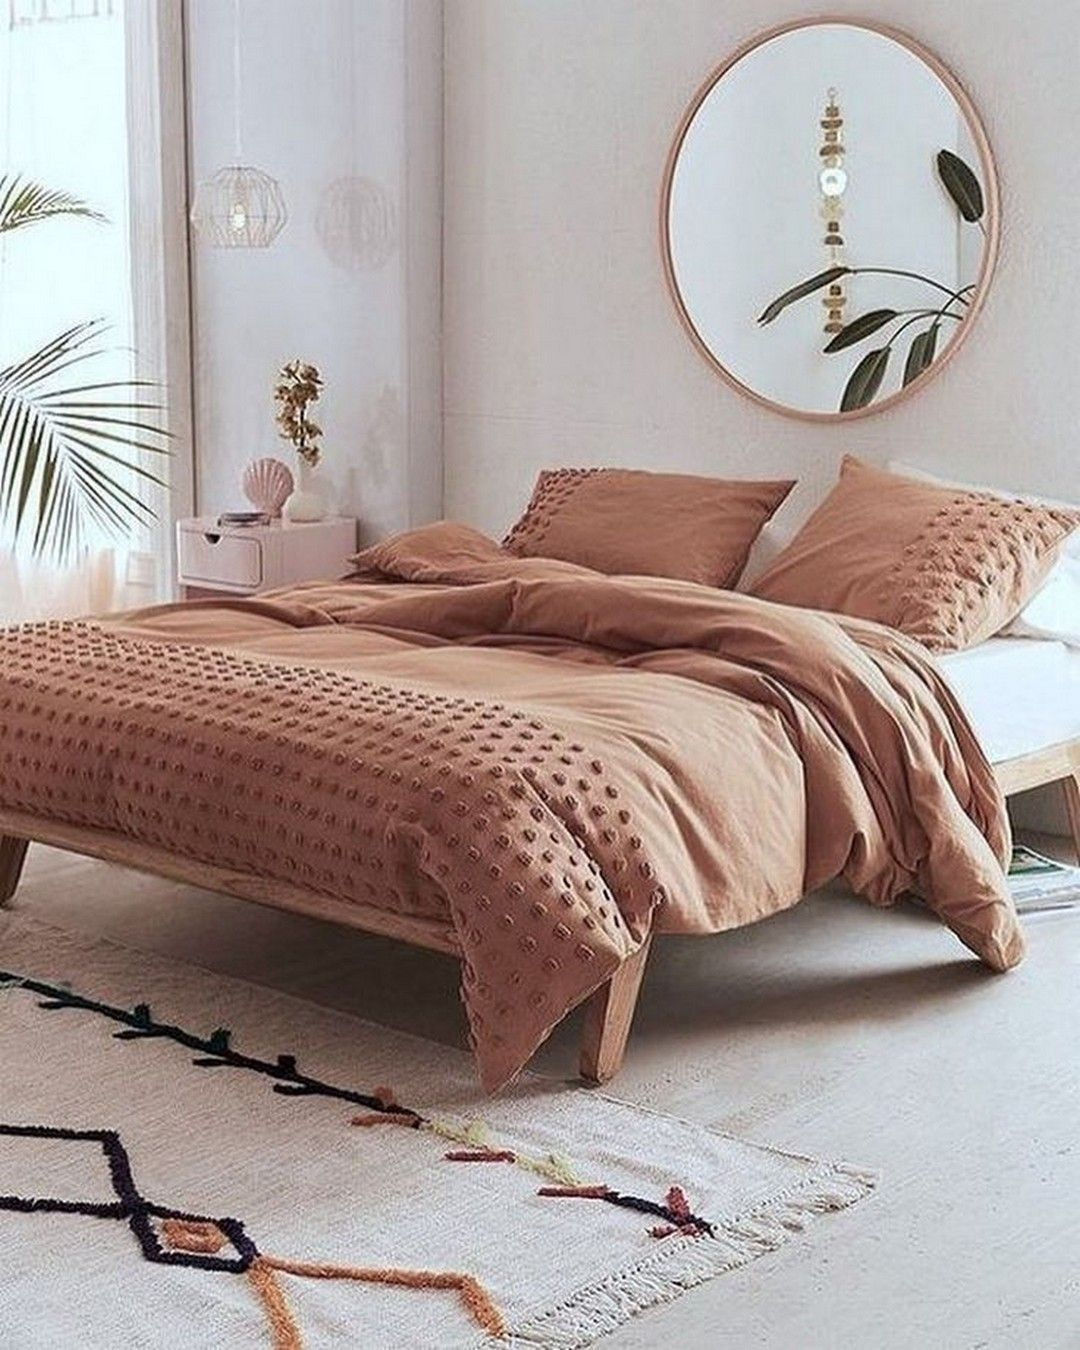 Bohemian Minimalist Bedroom Ideas with Urban Outfiters ...